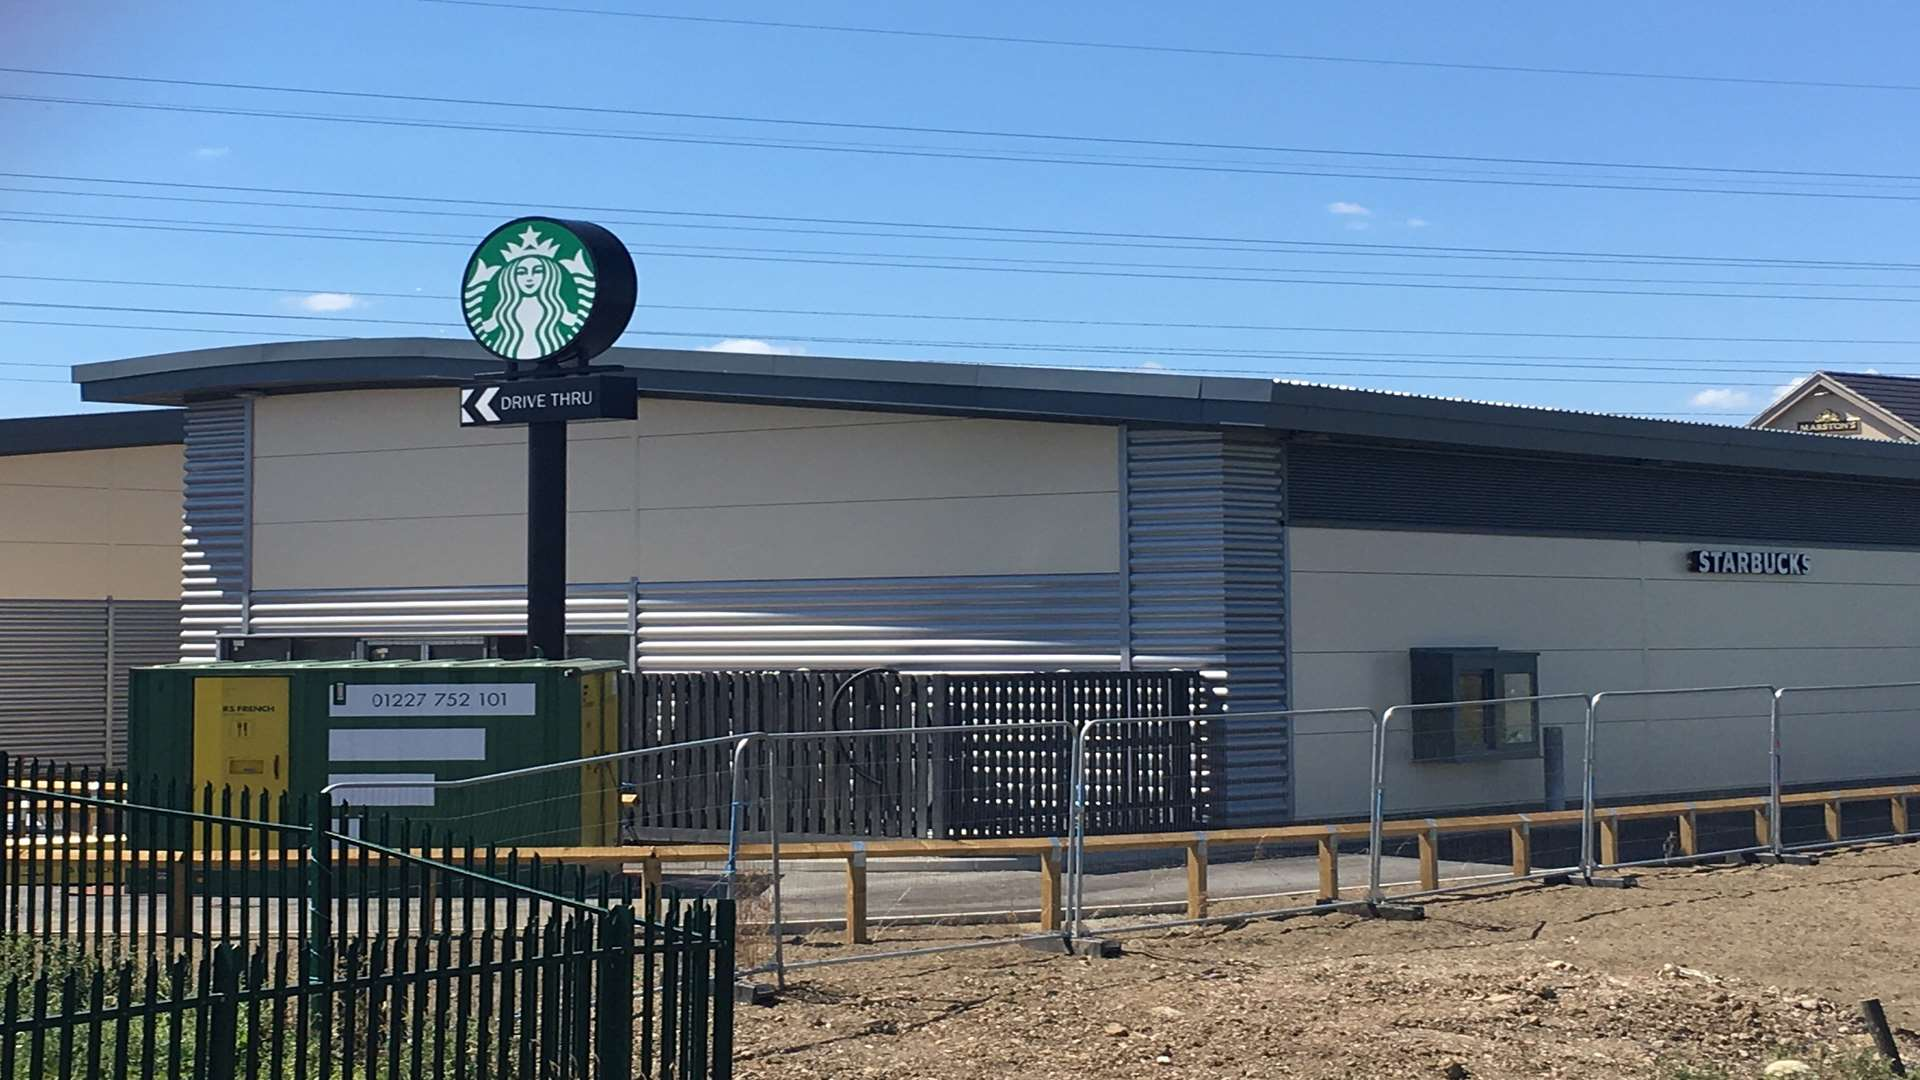 Starbucks is among the new businesses about to open at Neats Court Retail Park in Queenborough.